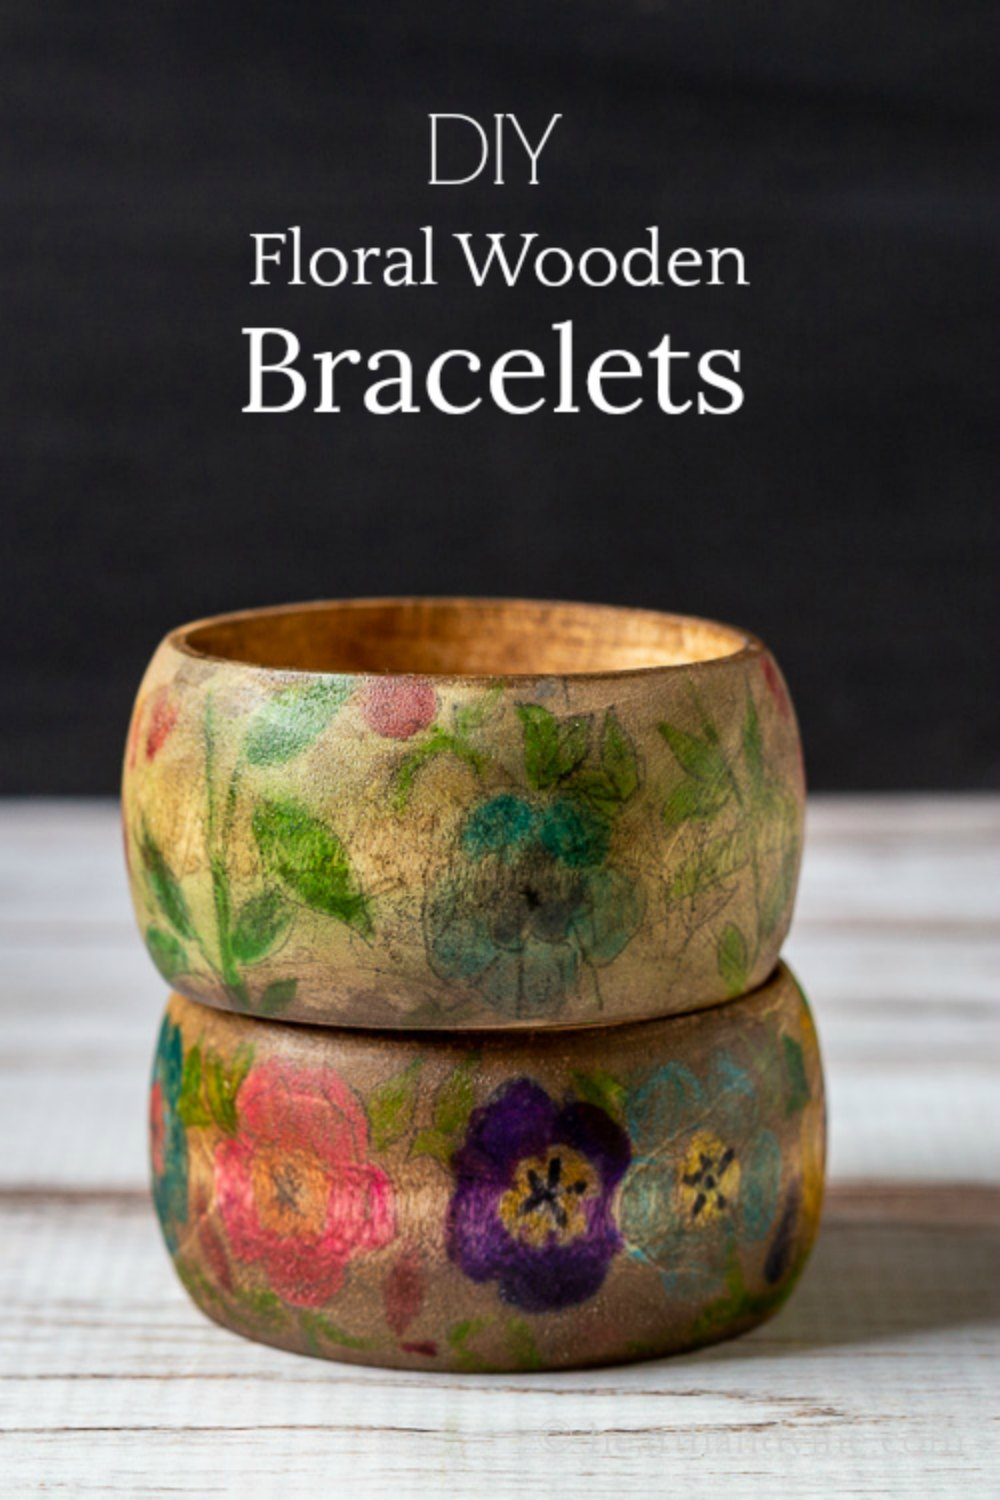 Stacked floral wood bracelets with text overlay